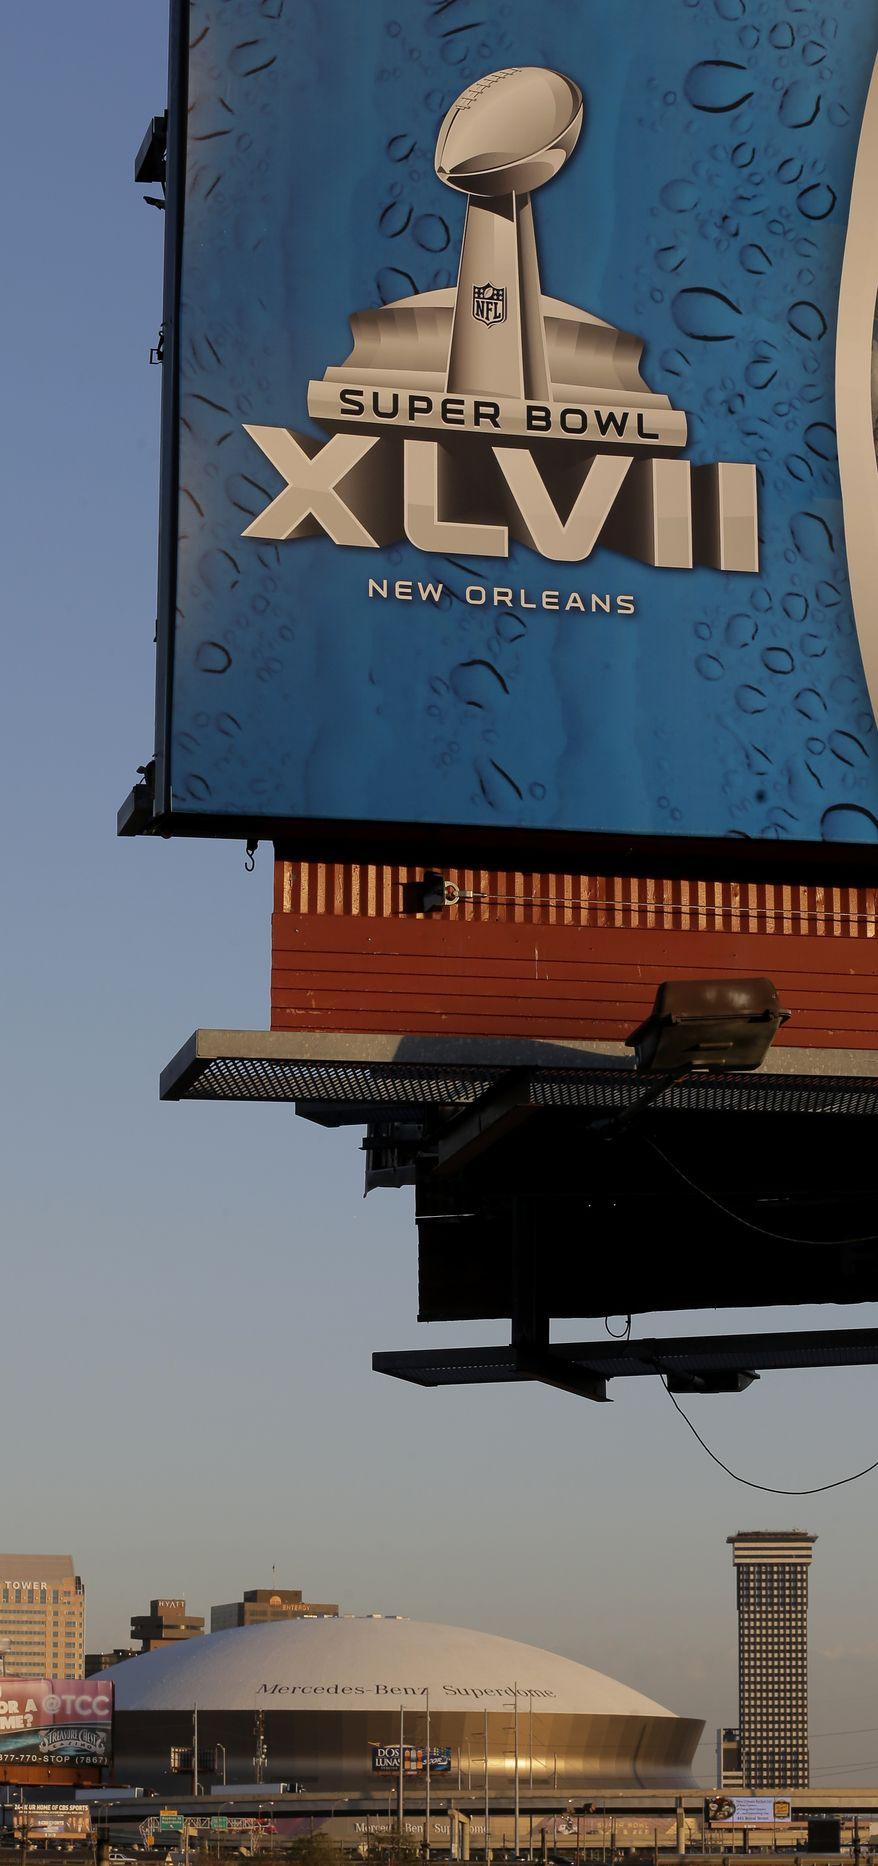 The Superdome is seen in the distance beyond a billboard Wednesday, Jan. 30, 2013, in New Orleans. The city will host the Super Bowl XLVII football game between the Baltimore Ravens and the San Francisco 49ers Sunday. (AP Photo/Charlie Riedel)